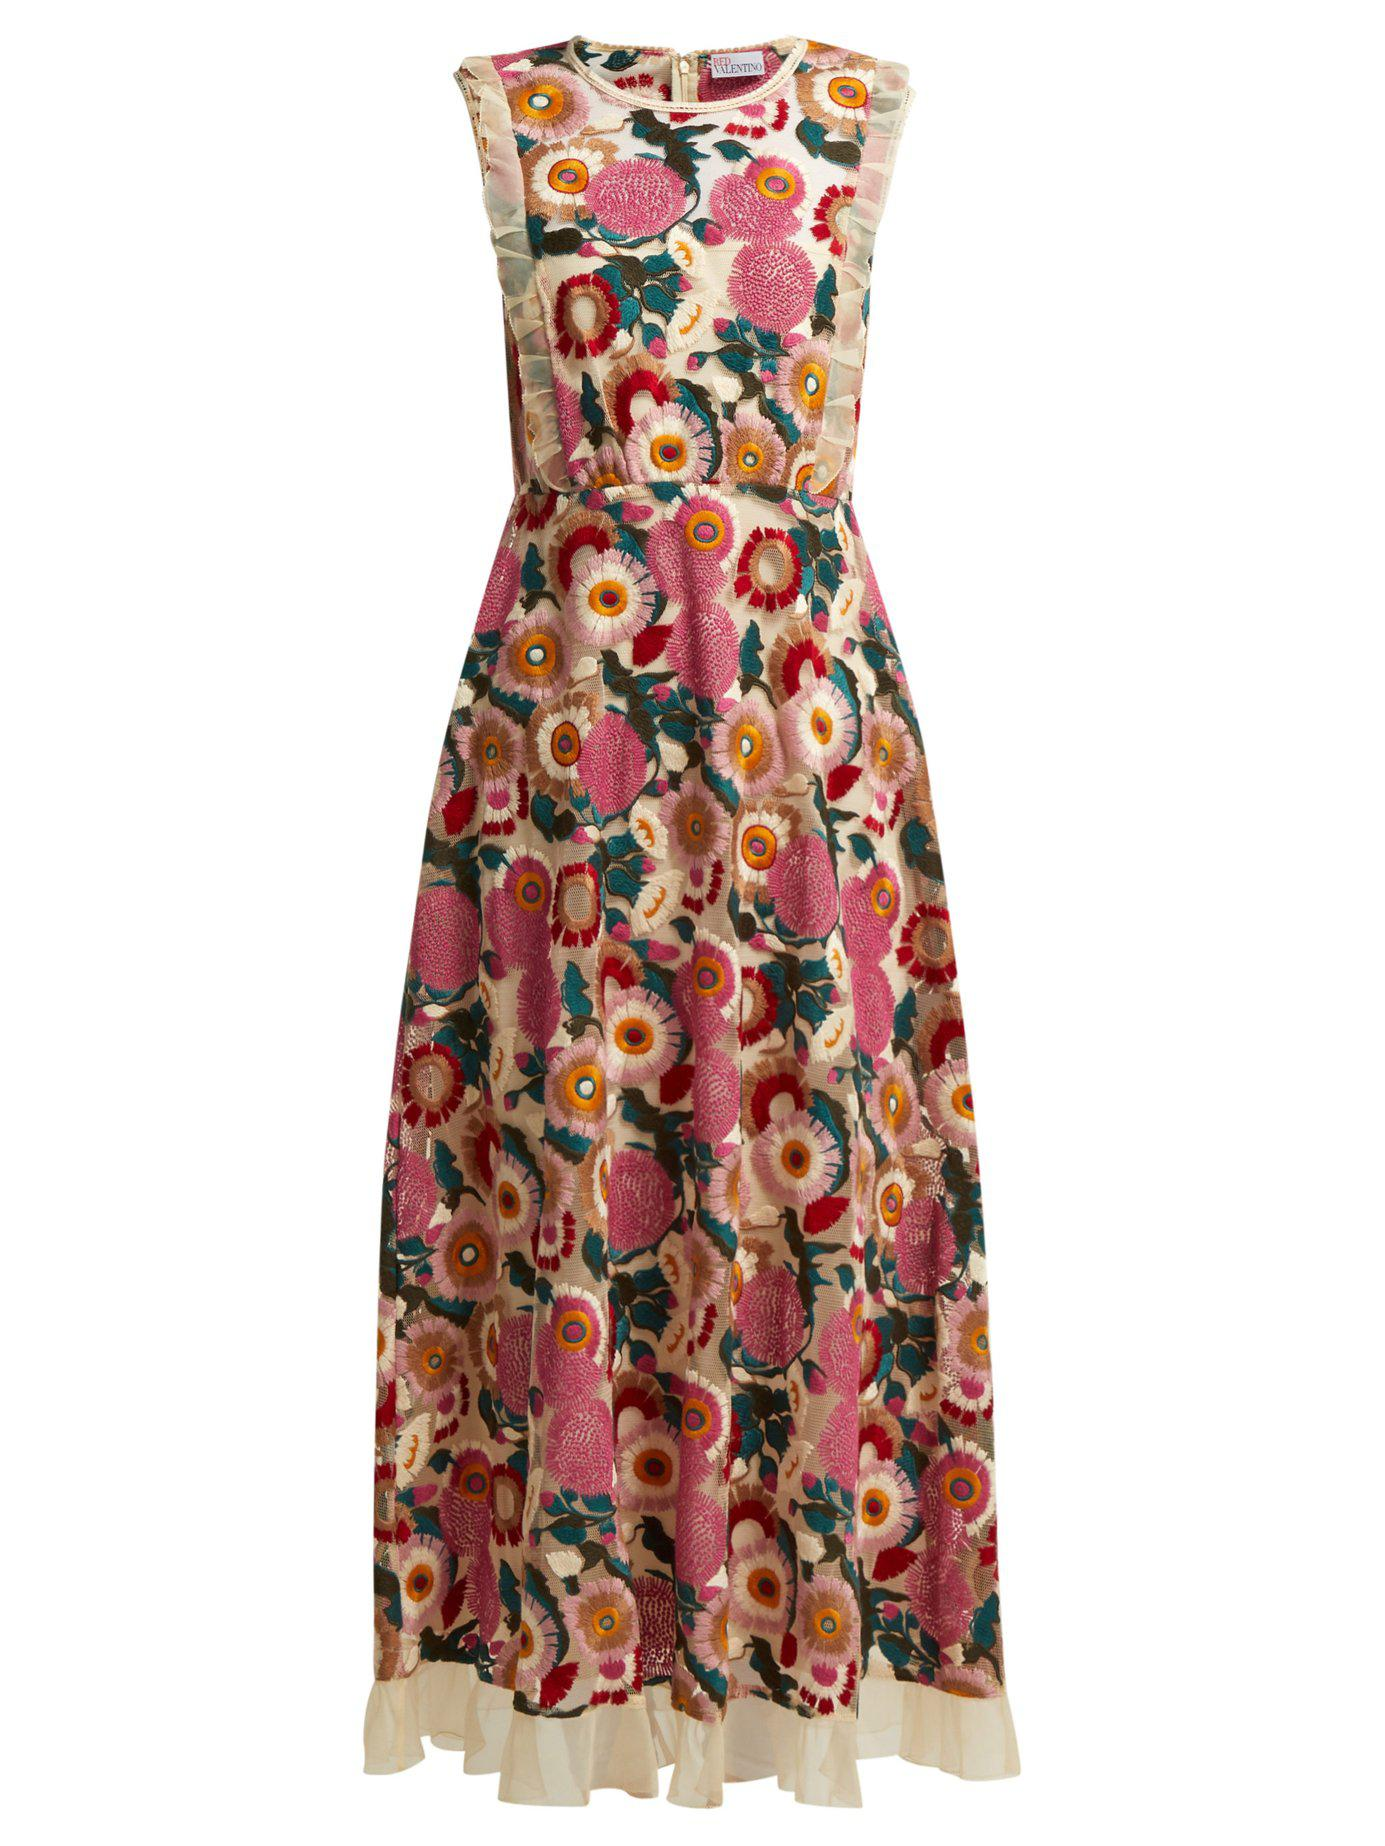 031897a93f6 Lyst - RED Valentino Floral Lace Midi Dress in Pink